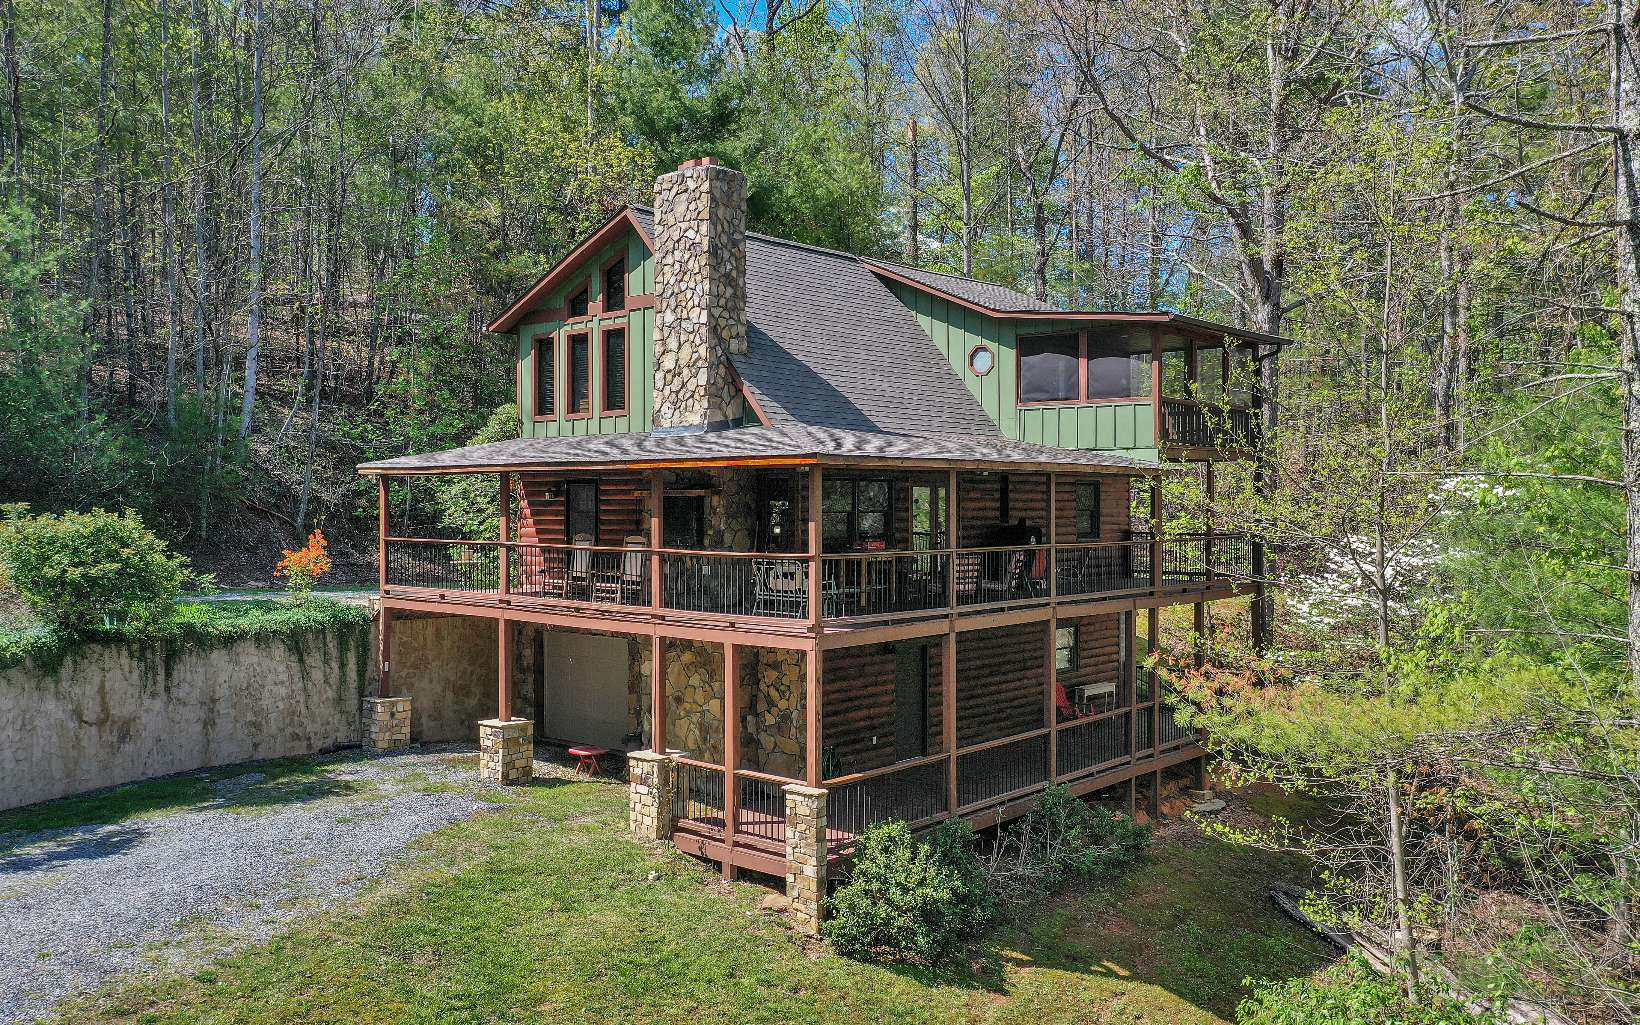 LOCATION< LOCATION< LOCATION!!! Aska Adventure Area with deeded Toccoa River Access. Why drive for 30 minutes to get to your cabin when you can be there in less than 10 minutes from either Downtown Blue Ridge or Lake Blue Ridge and within walking distance to the Toccoa River. 3 Bedroom / 3 Bath + Large Loft with large fixed glass windows to give you plenty of sunlight making this cabin a true gem. Oversized covered porches, Screen Porch off Master Bedroom, Floor to Ceiling Stone Covered Wood Burning Fireplace with the center stone the shape of Georgia. Chimney has a Triple Flue venting system for Fireplace, Outside Grill (on the covered porch) & Wood Stove in Basement. 2 driveways for your convenience, park up top with your groceries or park in the 1 car garage to enter thru the basement. Roof is less than 1 year old. (Gutters have not been replaced yet but will be).